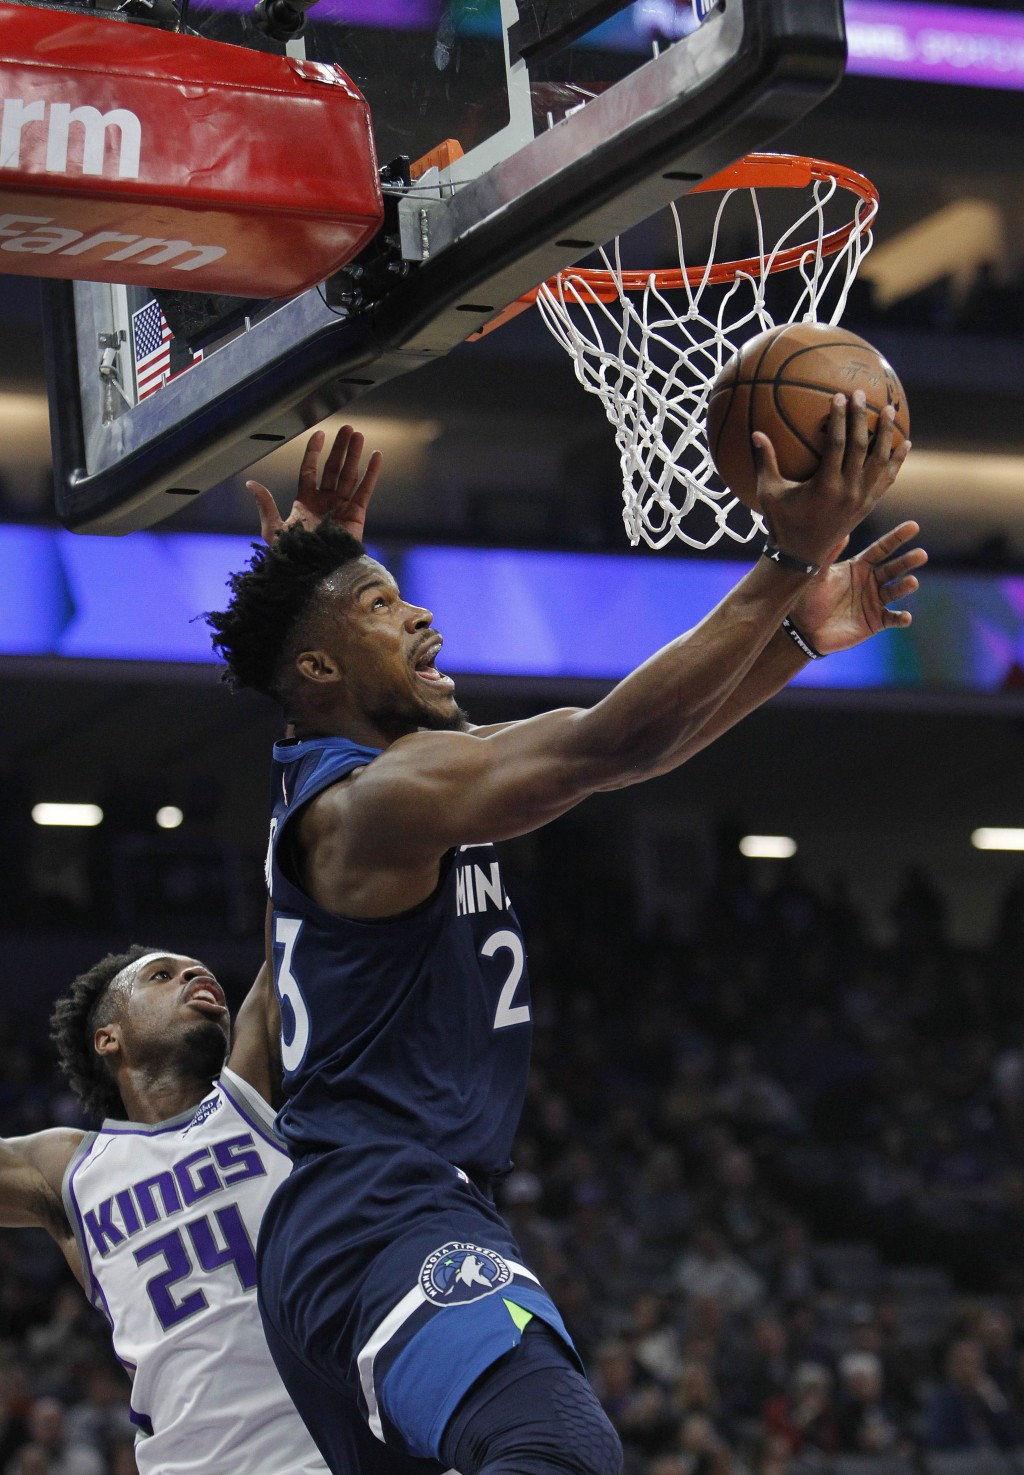 Minnesota Timberwolves guard Jimmy Butler (23) gets around Sacramento Kings guard Buddy Hield (24) for a basket during the first half of an NBA basket